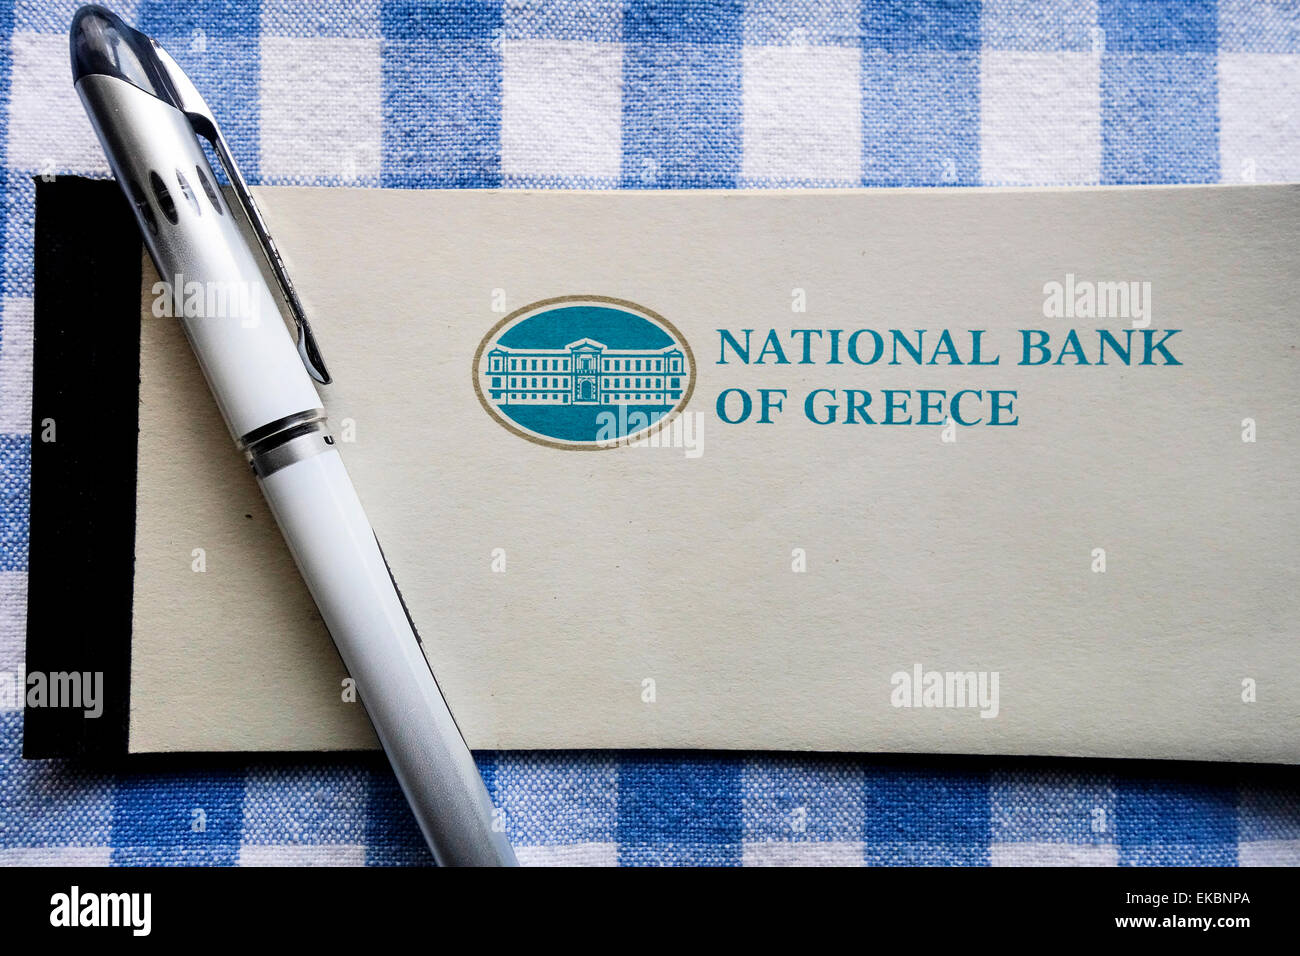 National Bank of Greece Cheque Book - Stock Image